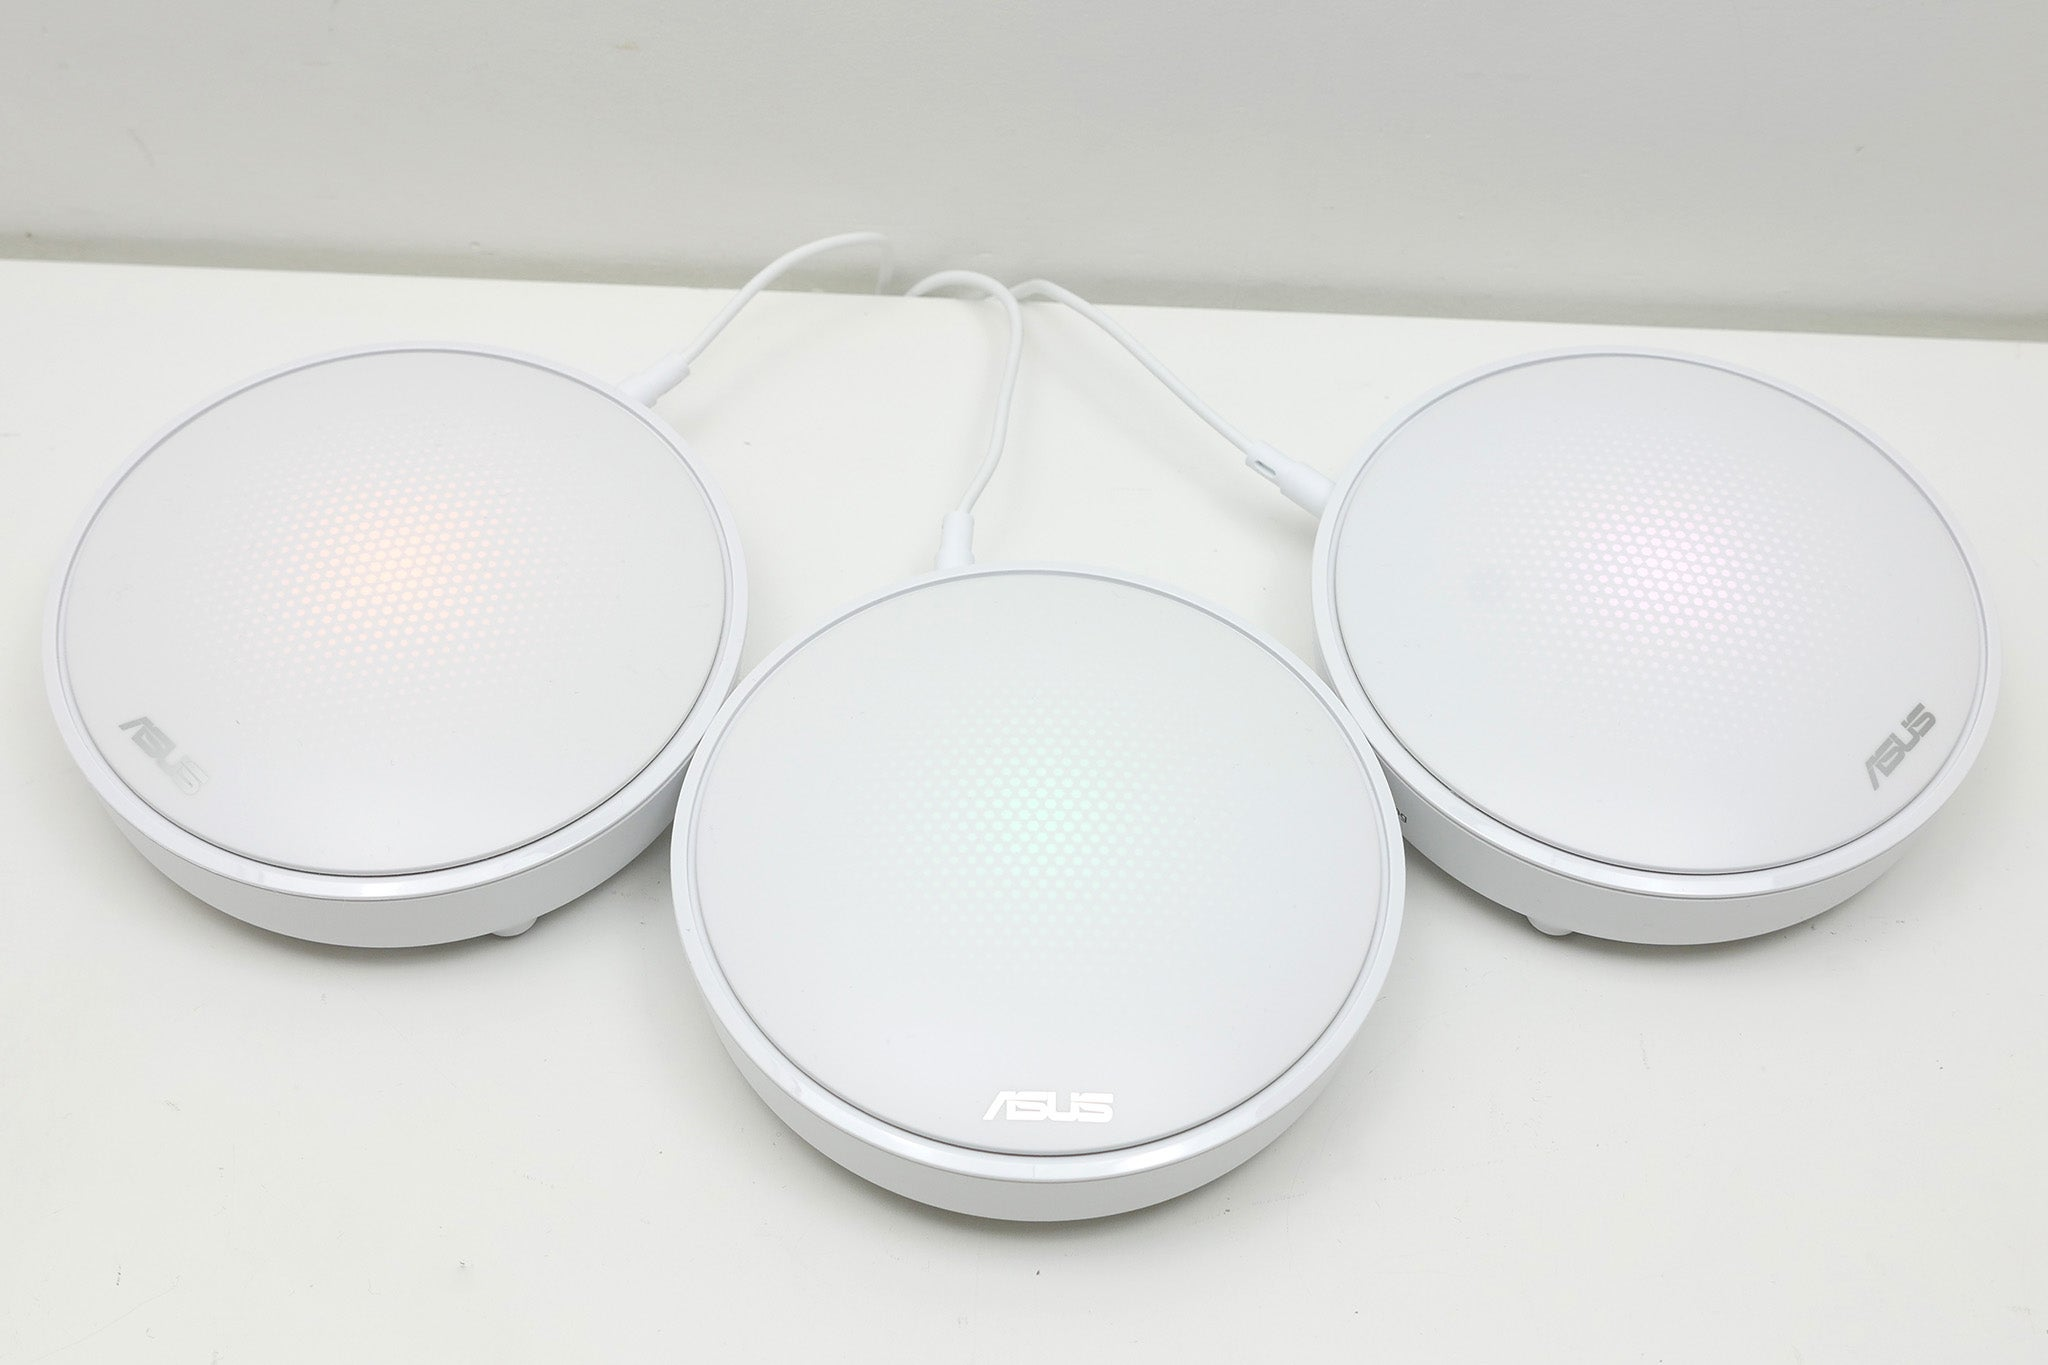 Asus Lyra Review Trusted Reviews Whole Home Surround Sound Wiring They Sit Sturdily On A Flat Surface Unlike The Tall Narrow Linksys Velop Units Plus Can Be Wall Mounted With Couple Of Screws